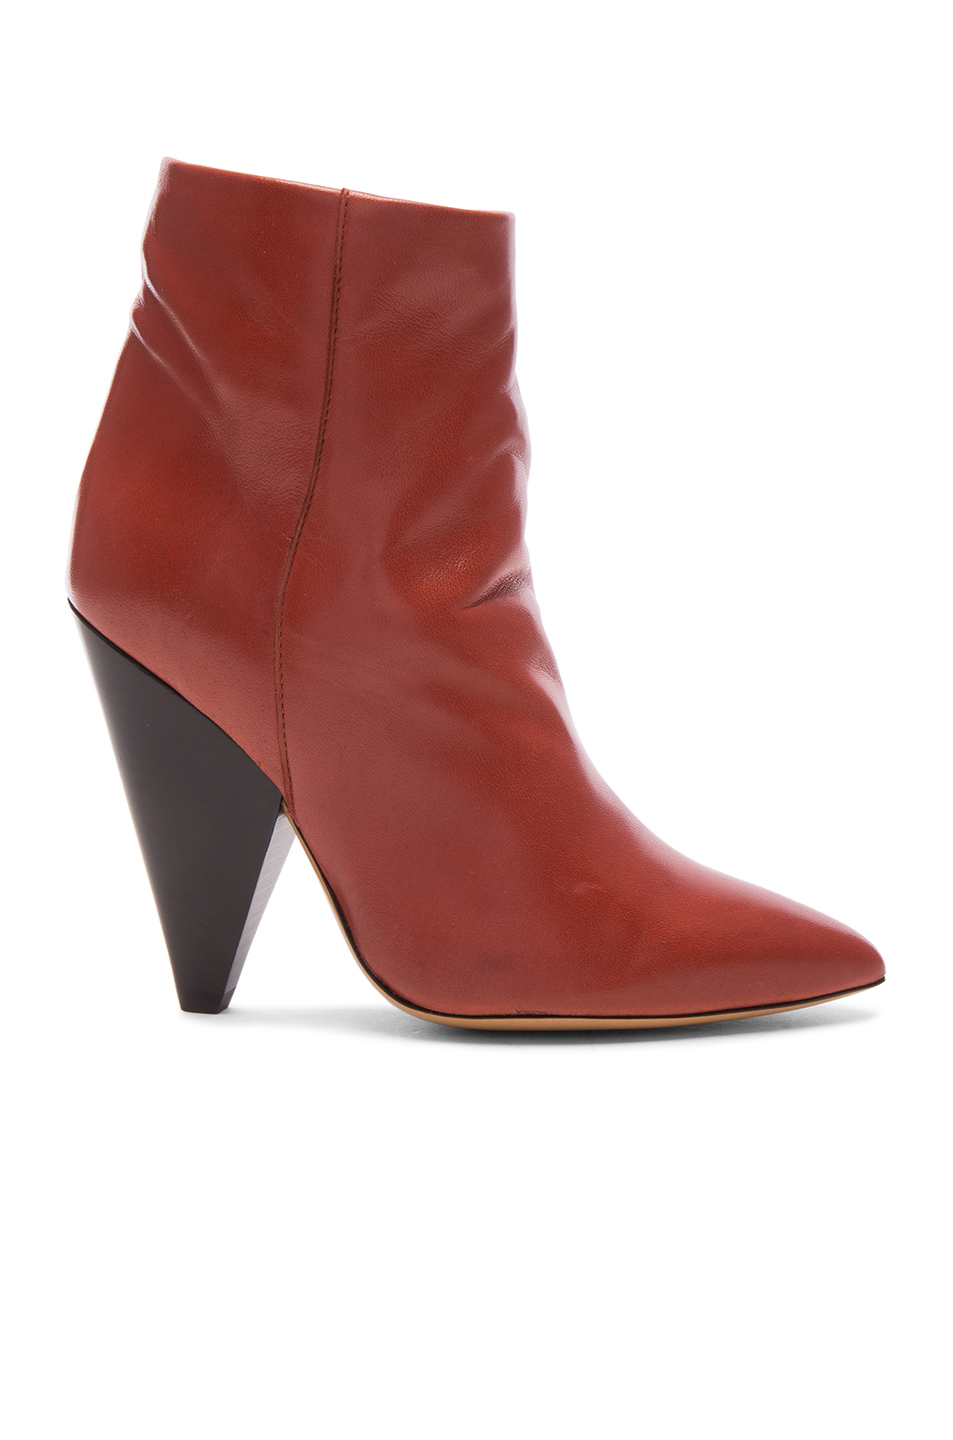 Isabel Marant Leather Leydoni Booties in Red